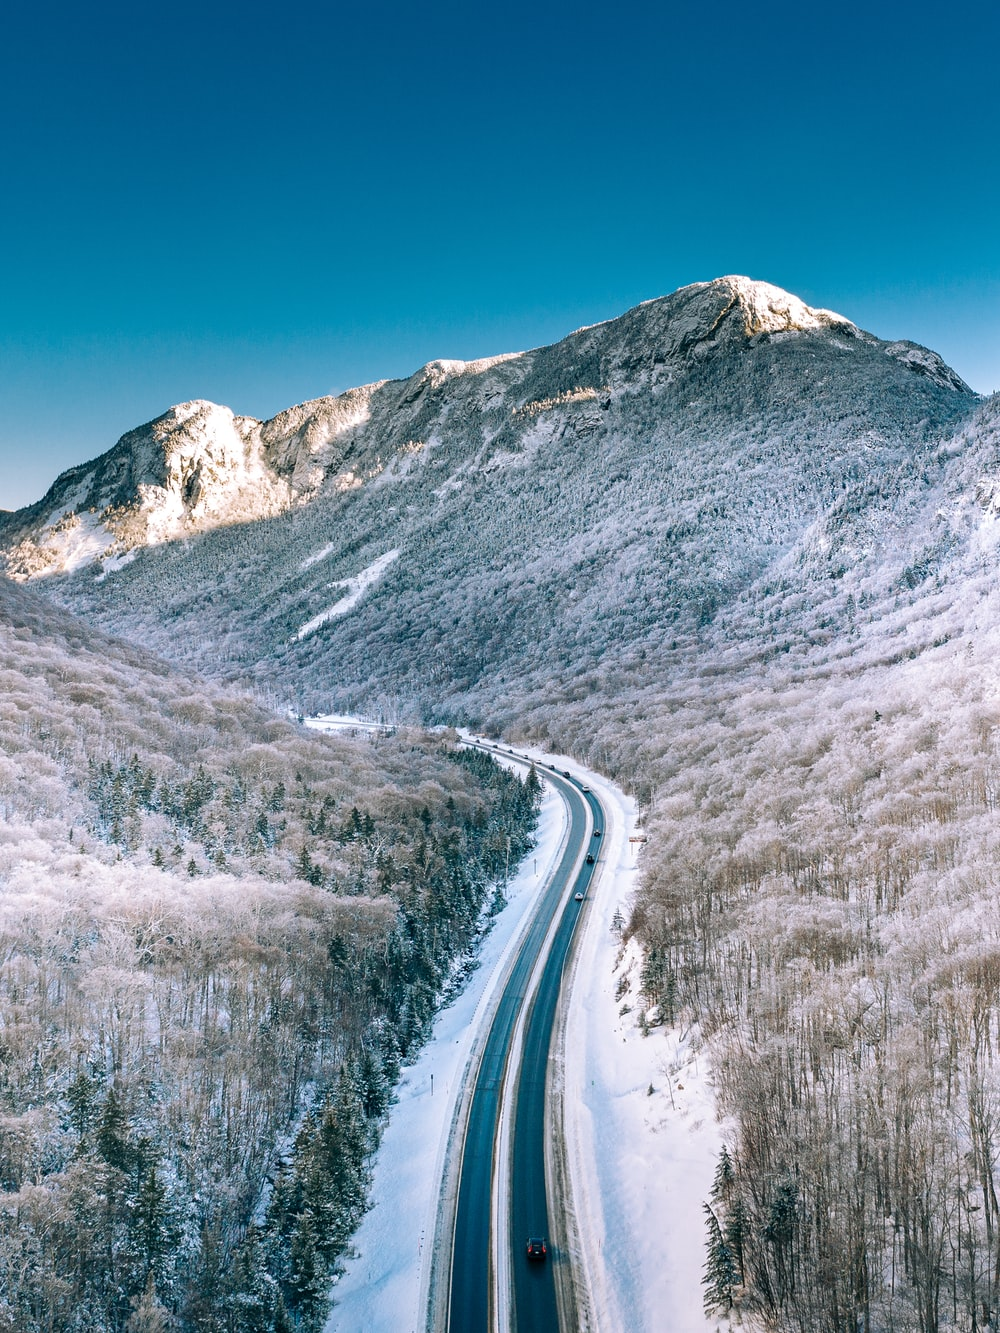 snow covered road near mountain under blue sky during daytime